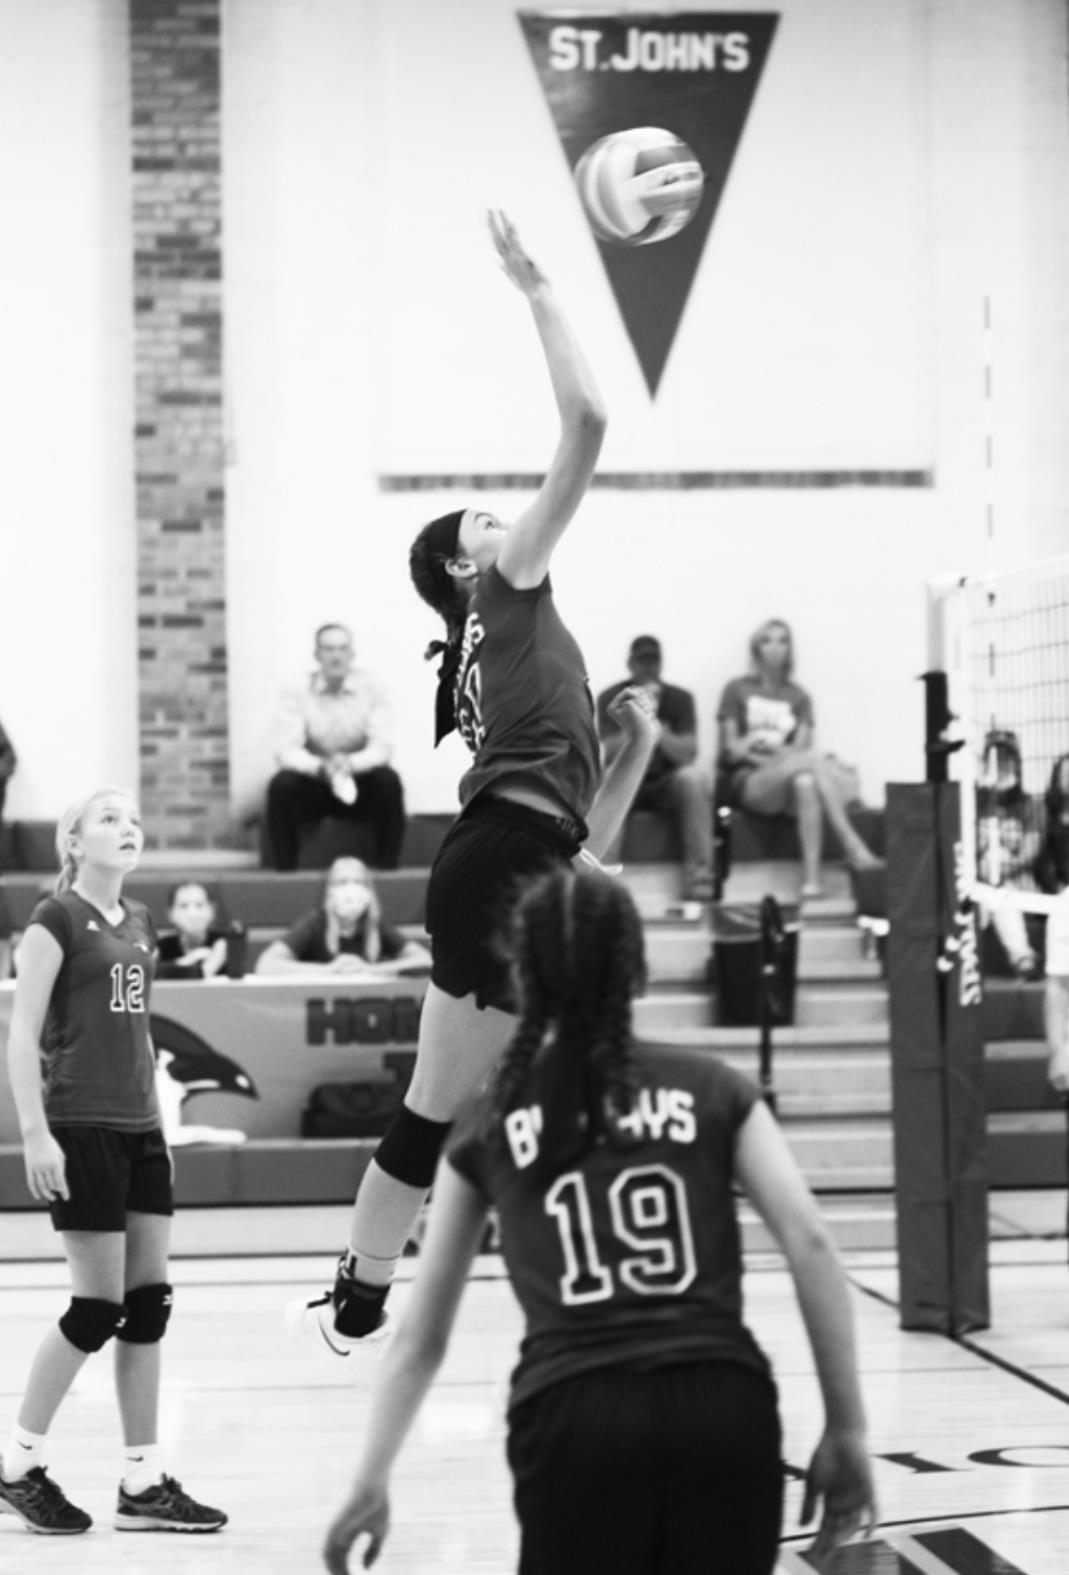 Sophia Thompson No. 17 attacks the at the net for the St. John's/Tipton middle school kill while teammates Carlie Brummer No. 12 and Clare Meyer No. 19 are ready on the play. Andrea Wiles courtesy photo